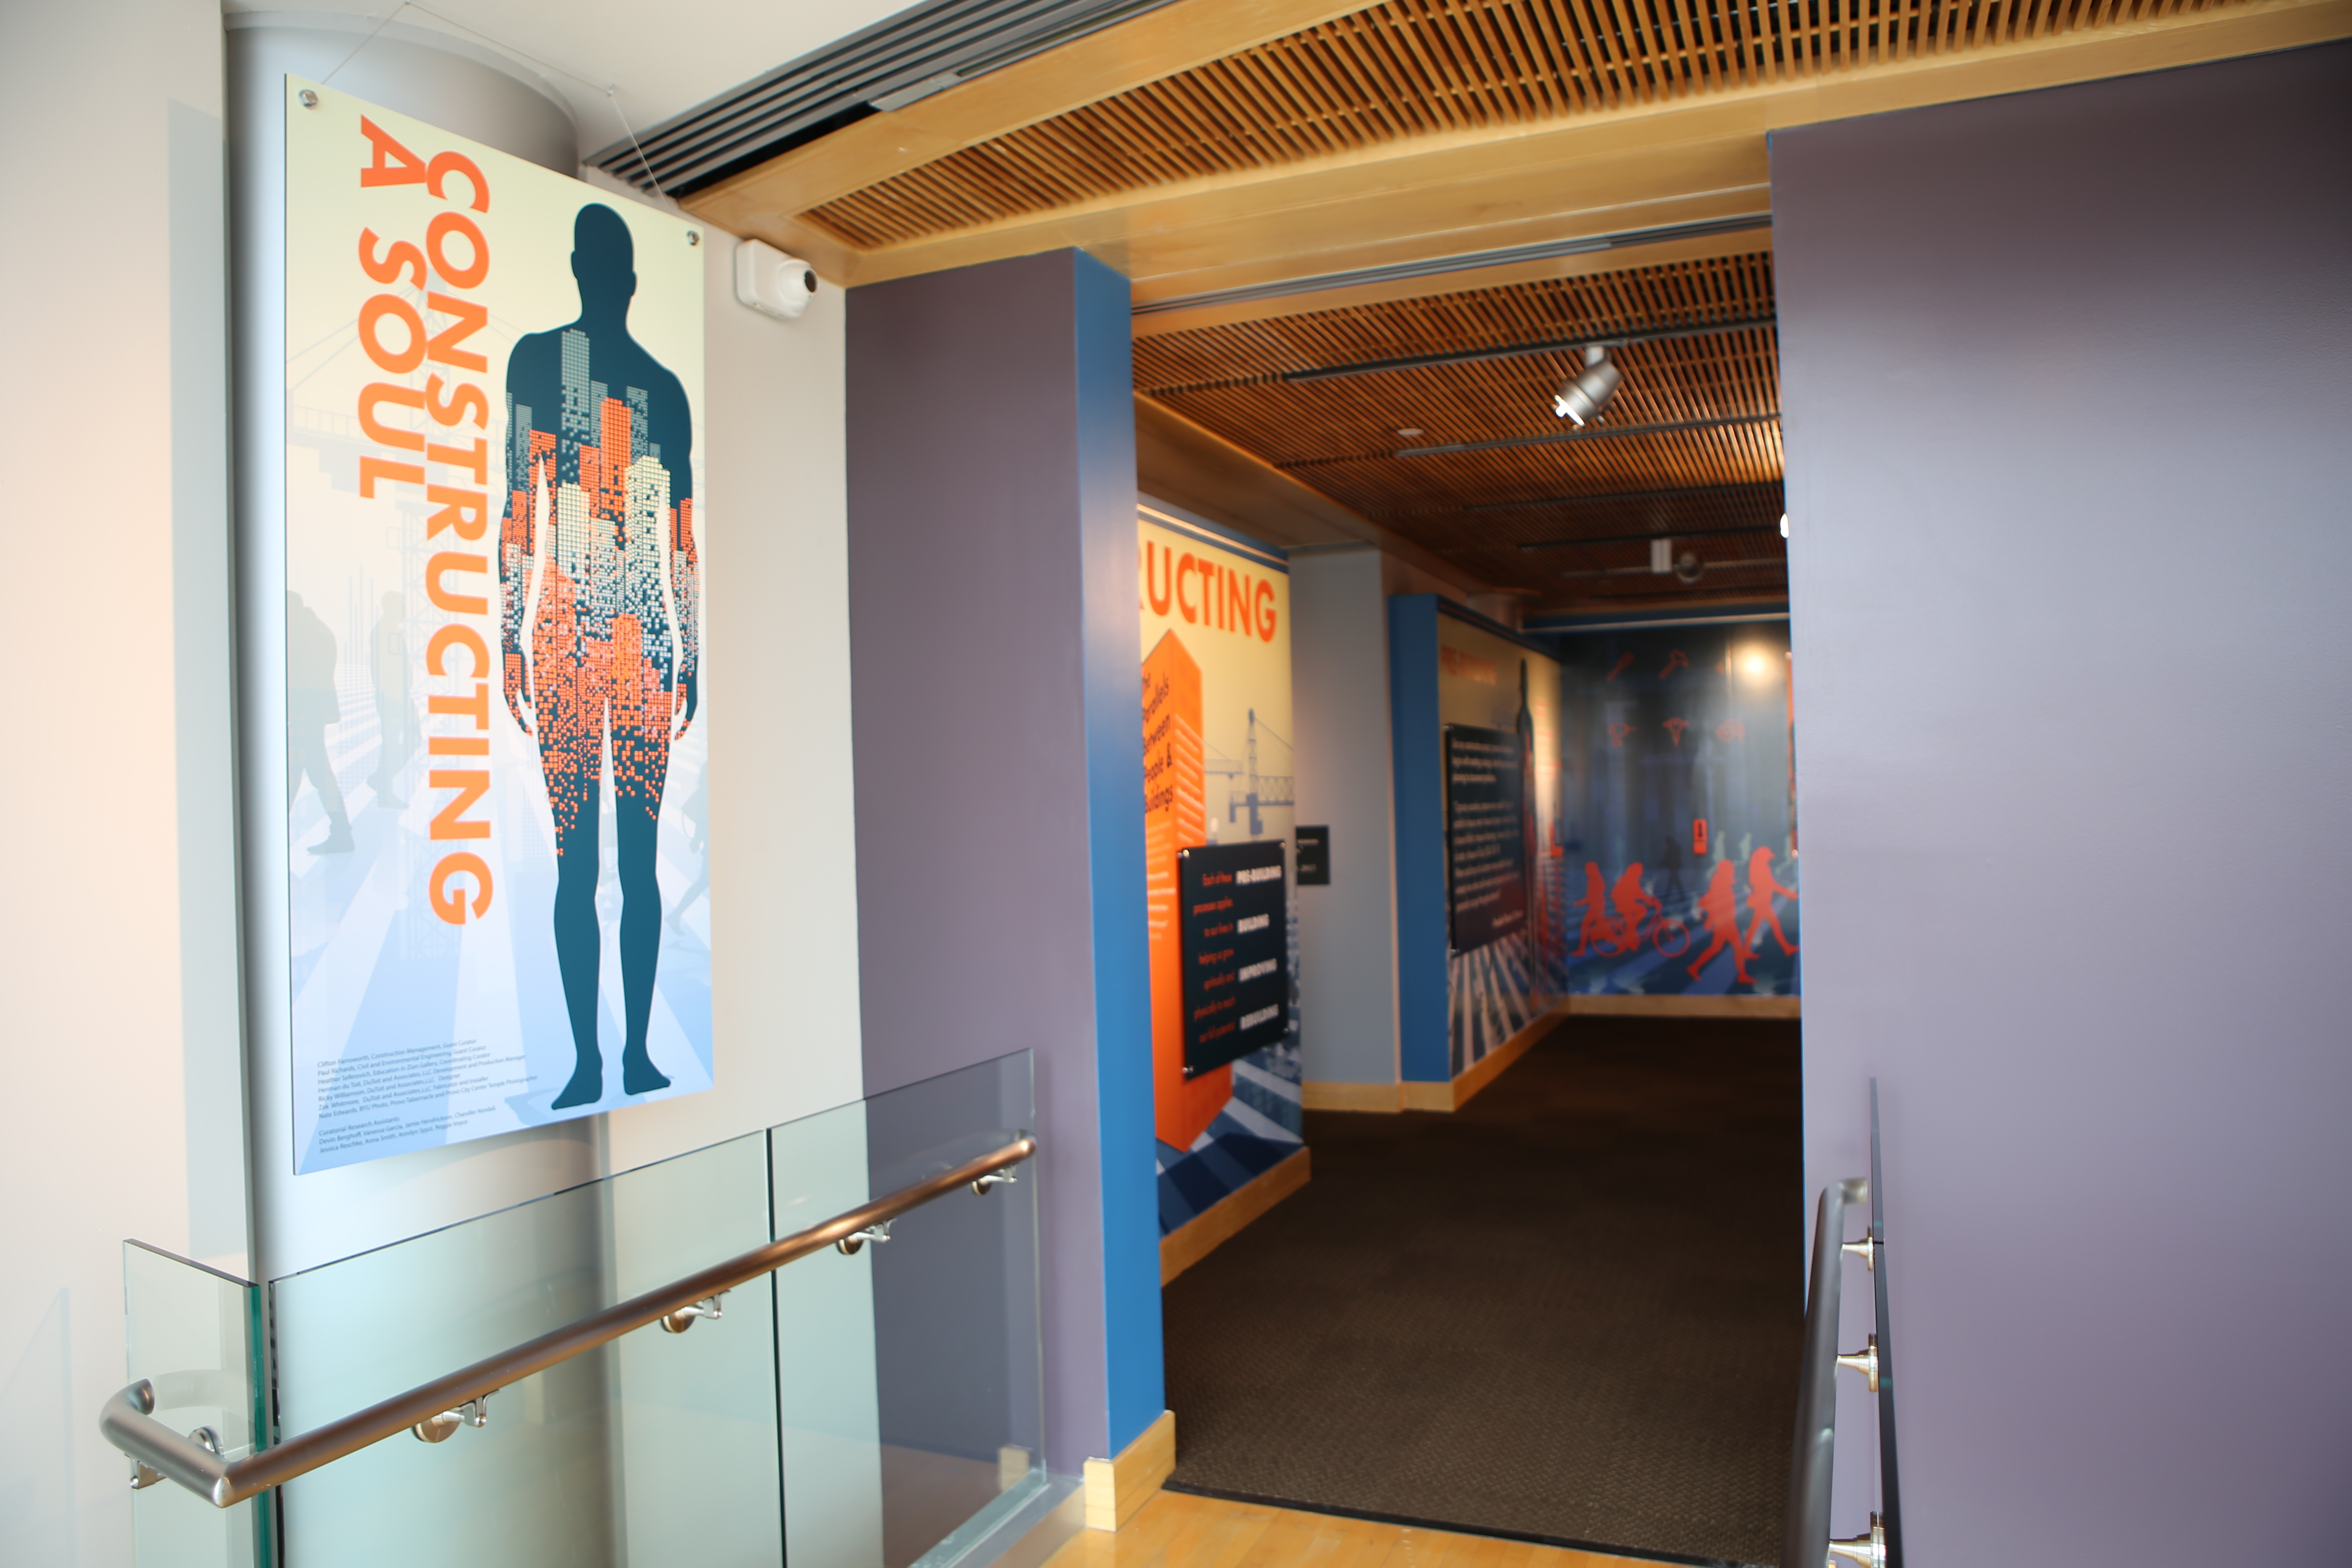 """Engineering professors from Brigham Young University were enlisted to help curate the """"Constructing a Soul"""" exhibition, which draws parallels between building and improving a structure -- and doing the same thing in one's own life."""